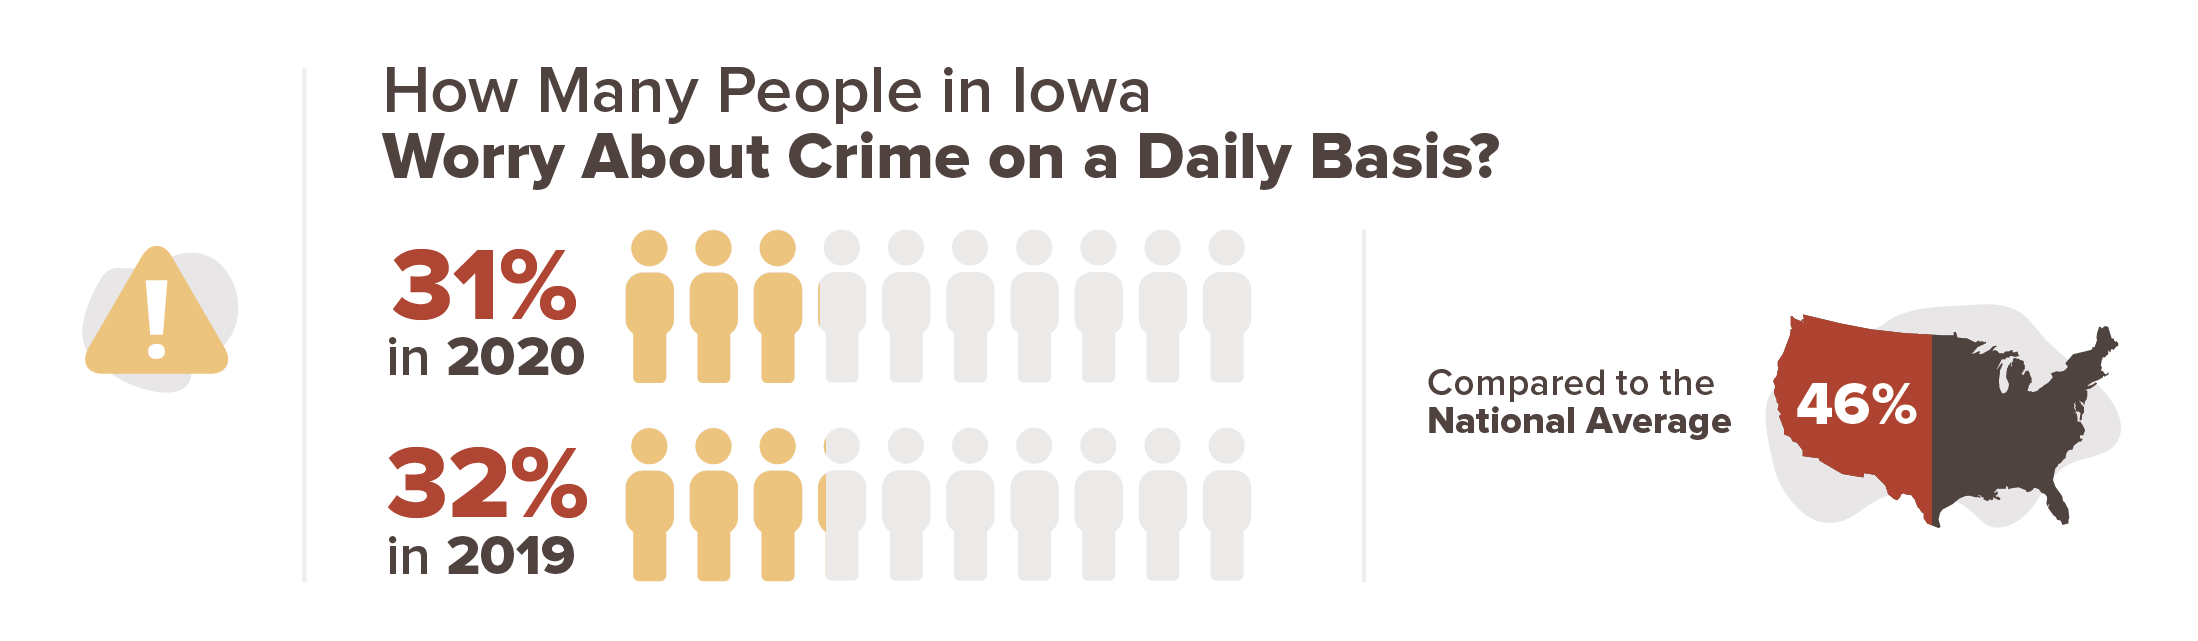 31% of people in Iowa worry about crime on a daily basis in 2020, compared to 32% of people in 2019.